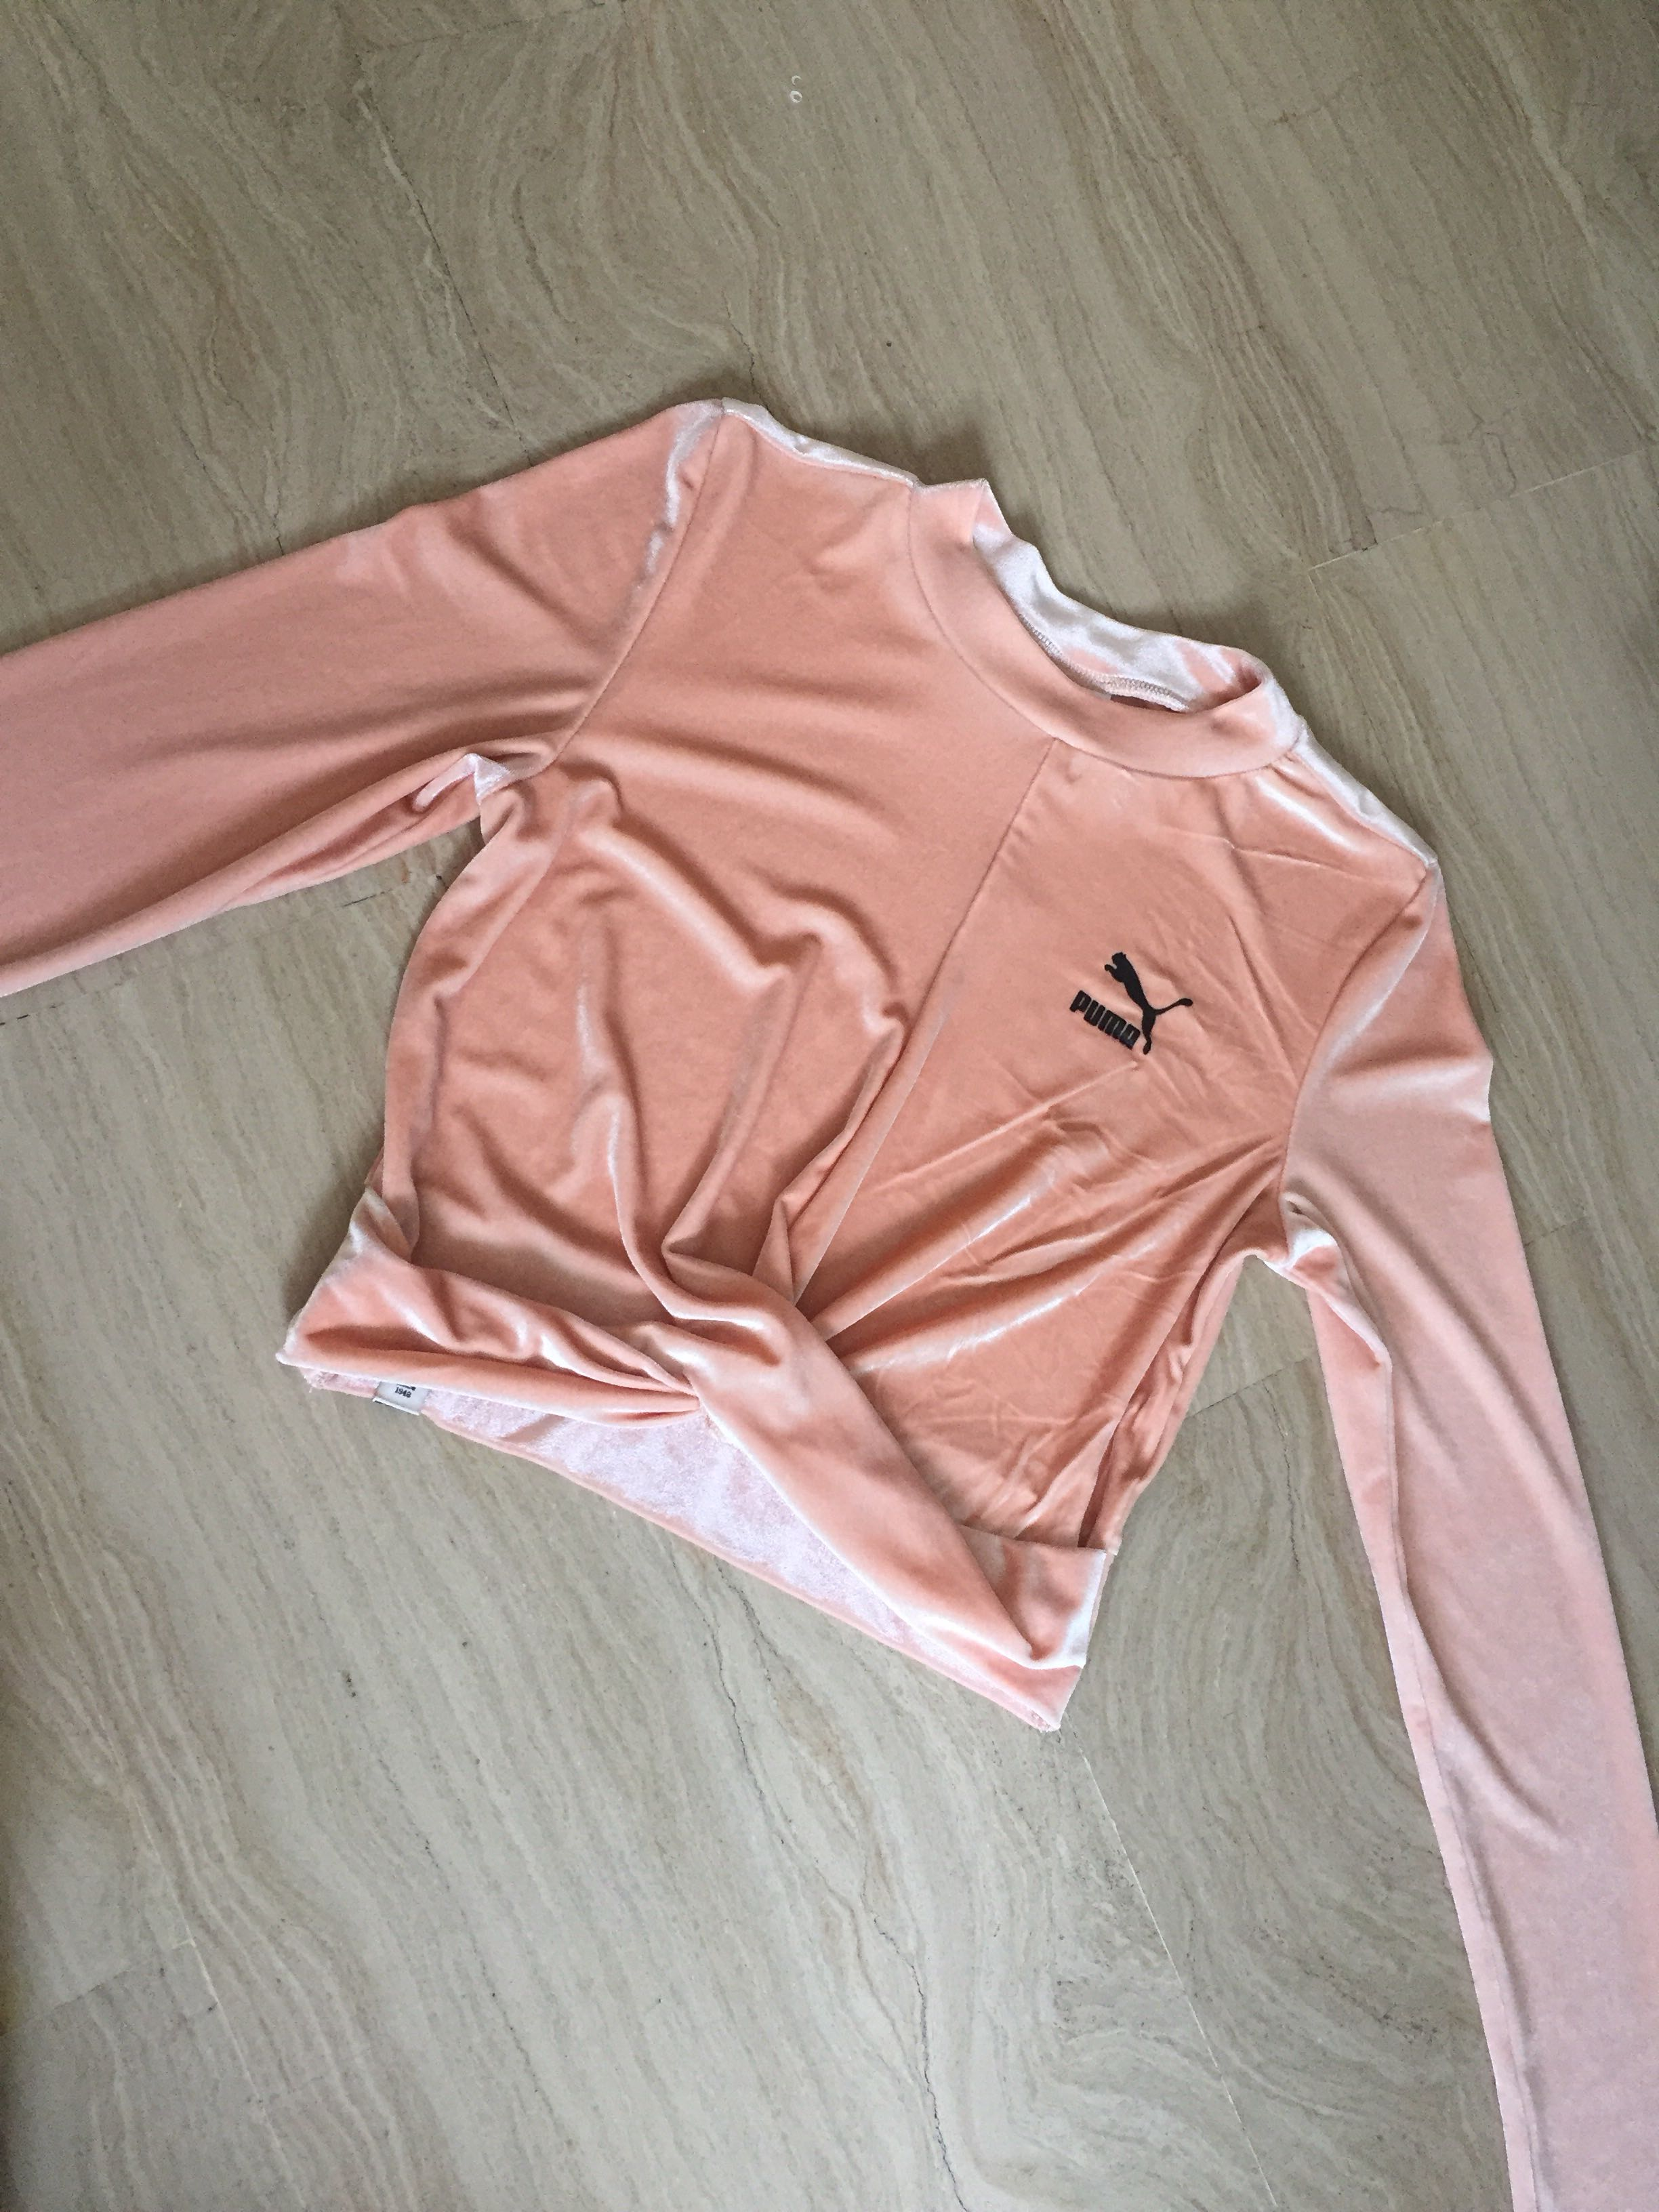 c5ff9dc6753 Puma velvet long sleeve crop top, Women's Fashion, Clothes, Tops on  Carousell